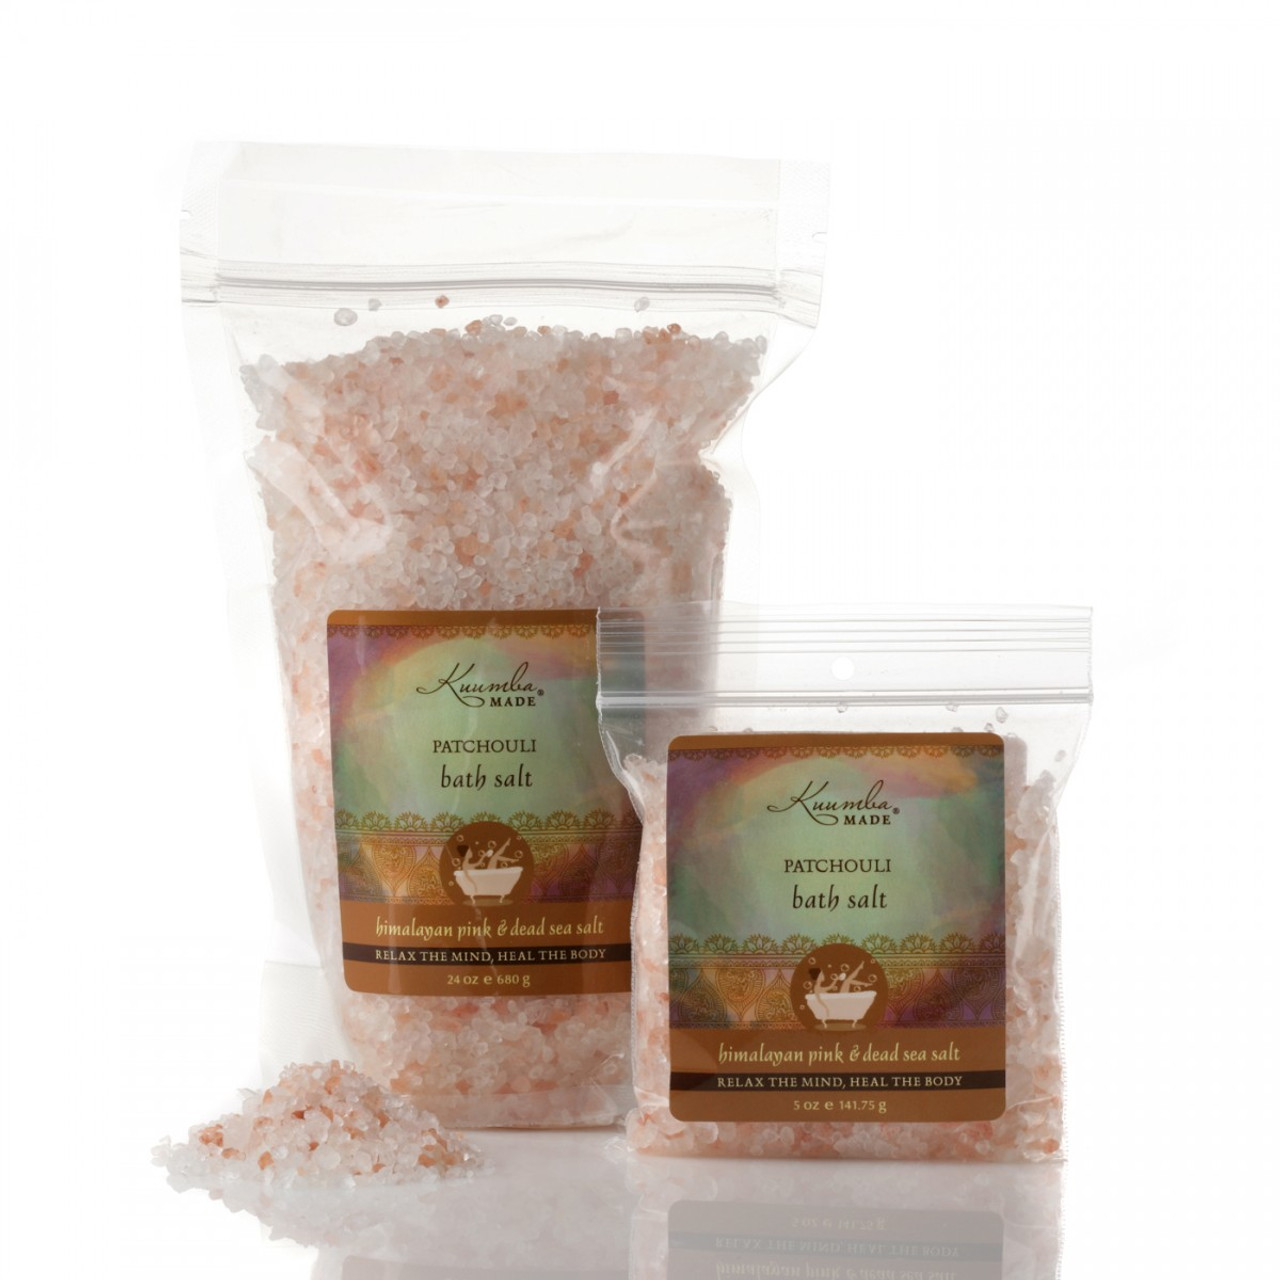 Kuumba Made Patchouli Bath Salt